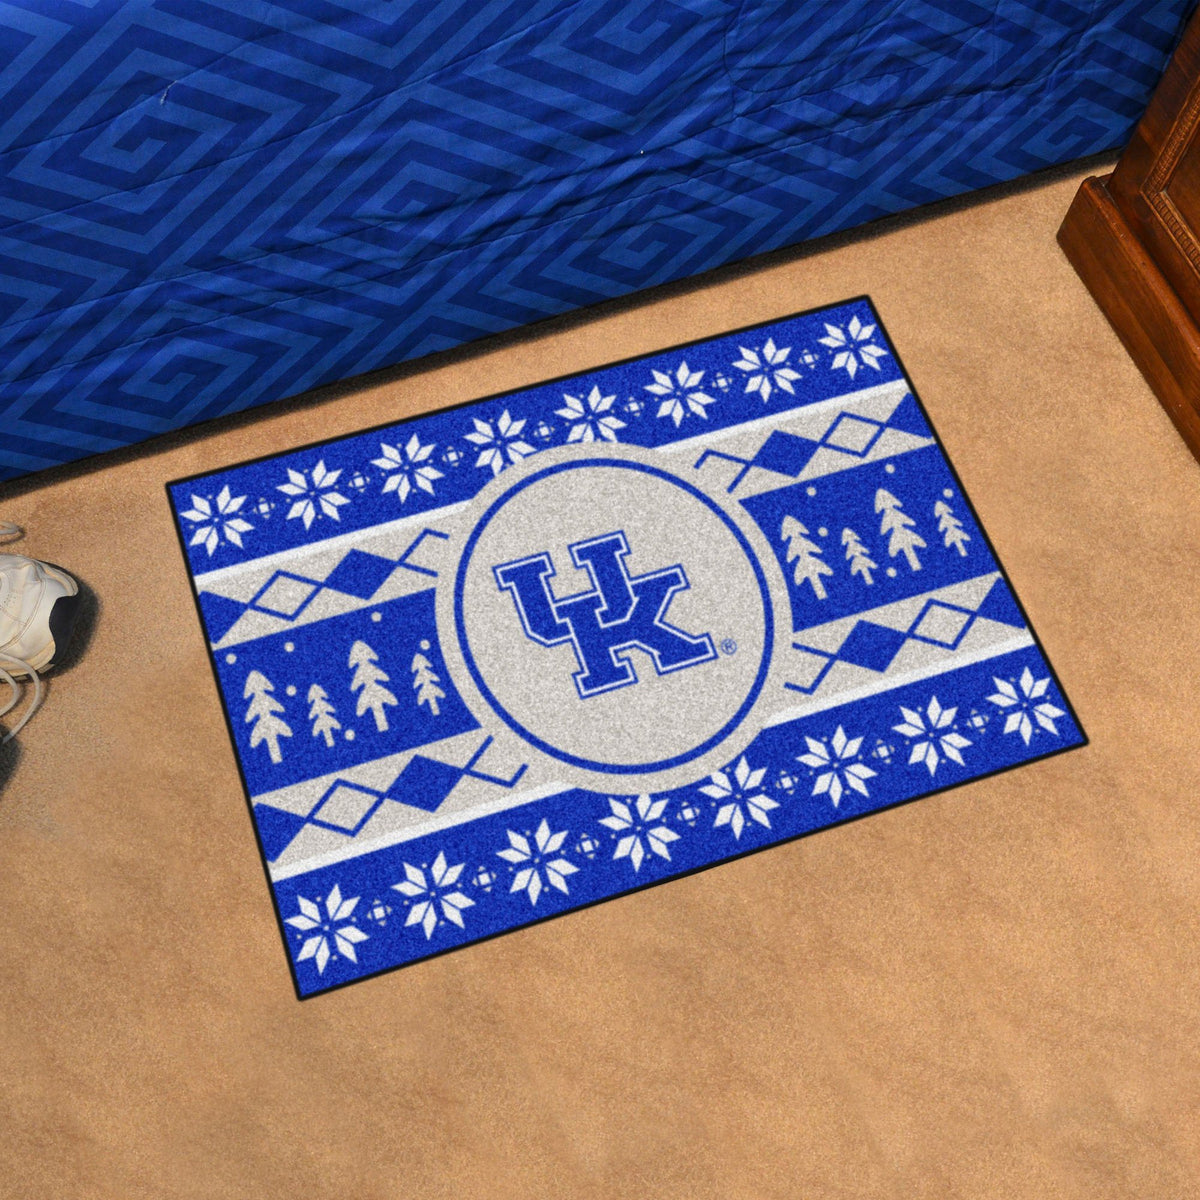 Collegiate - Holiday Sweater Starter Mat Collegiate Mats, Rectangular Mats, Holiday Sweater Starter Mat, Collegiate, Home Fan Mats Kentucky